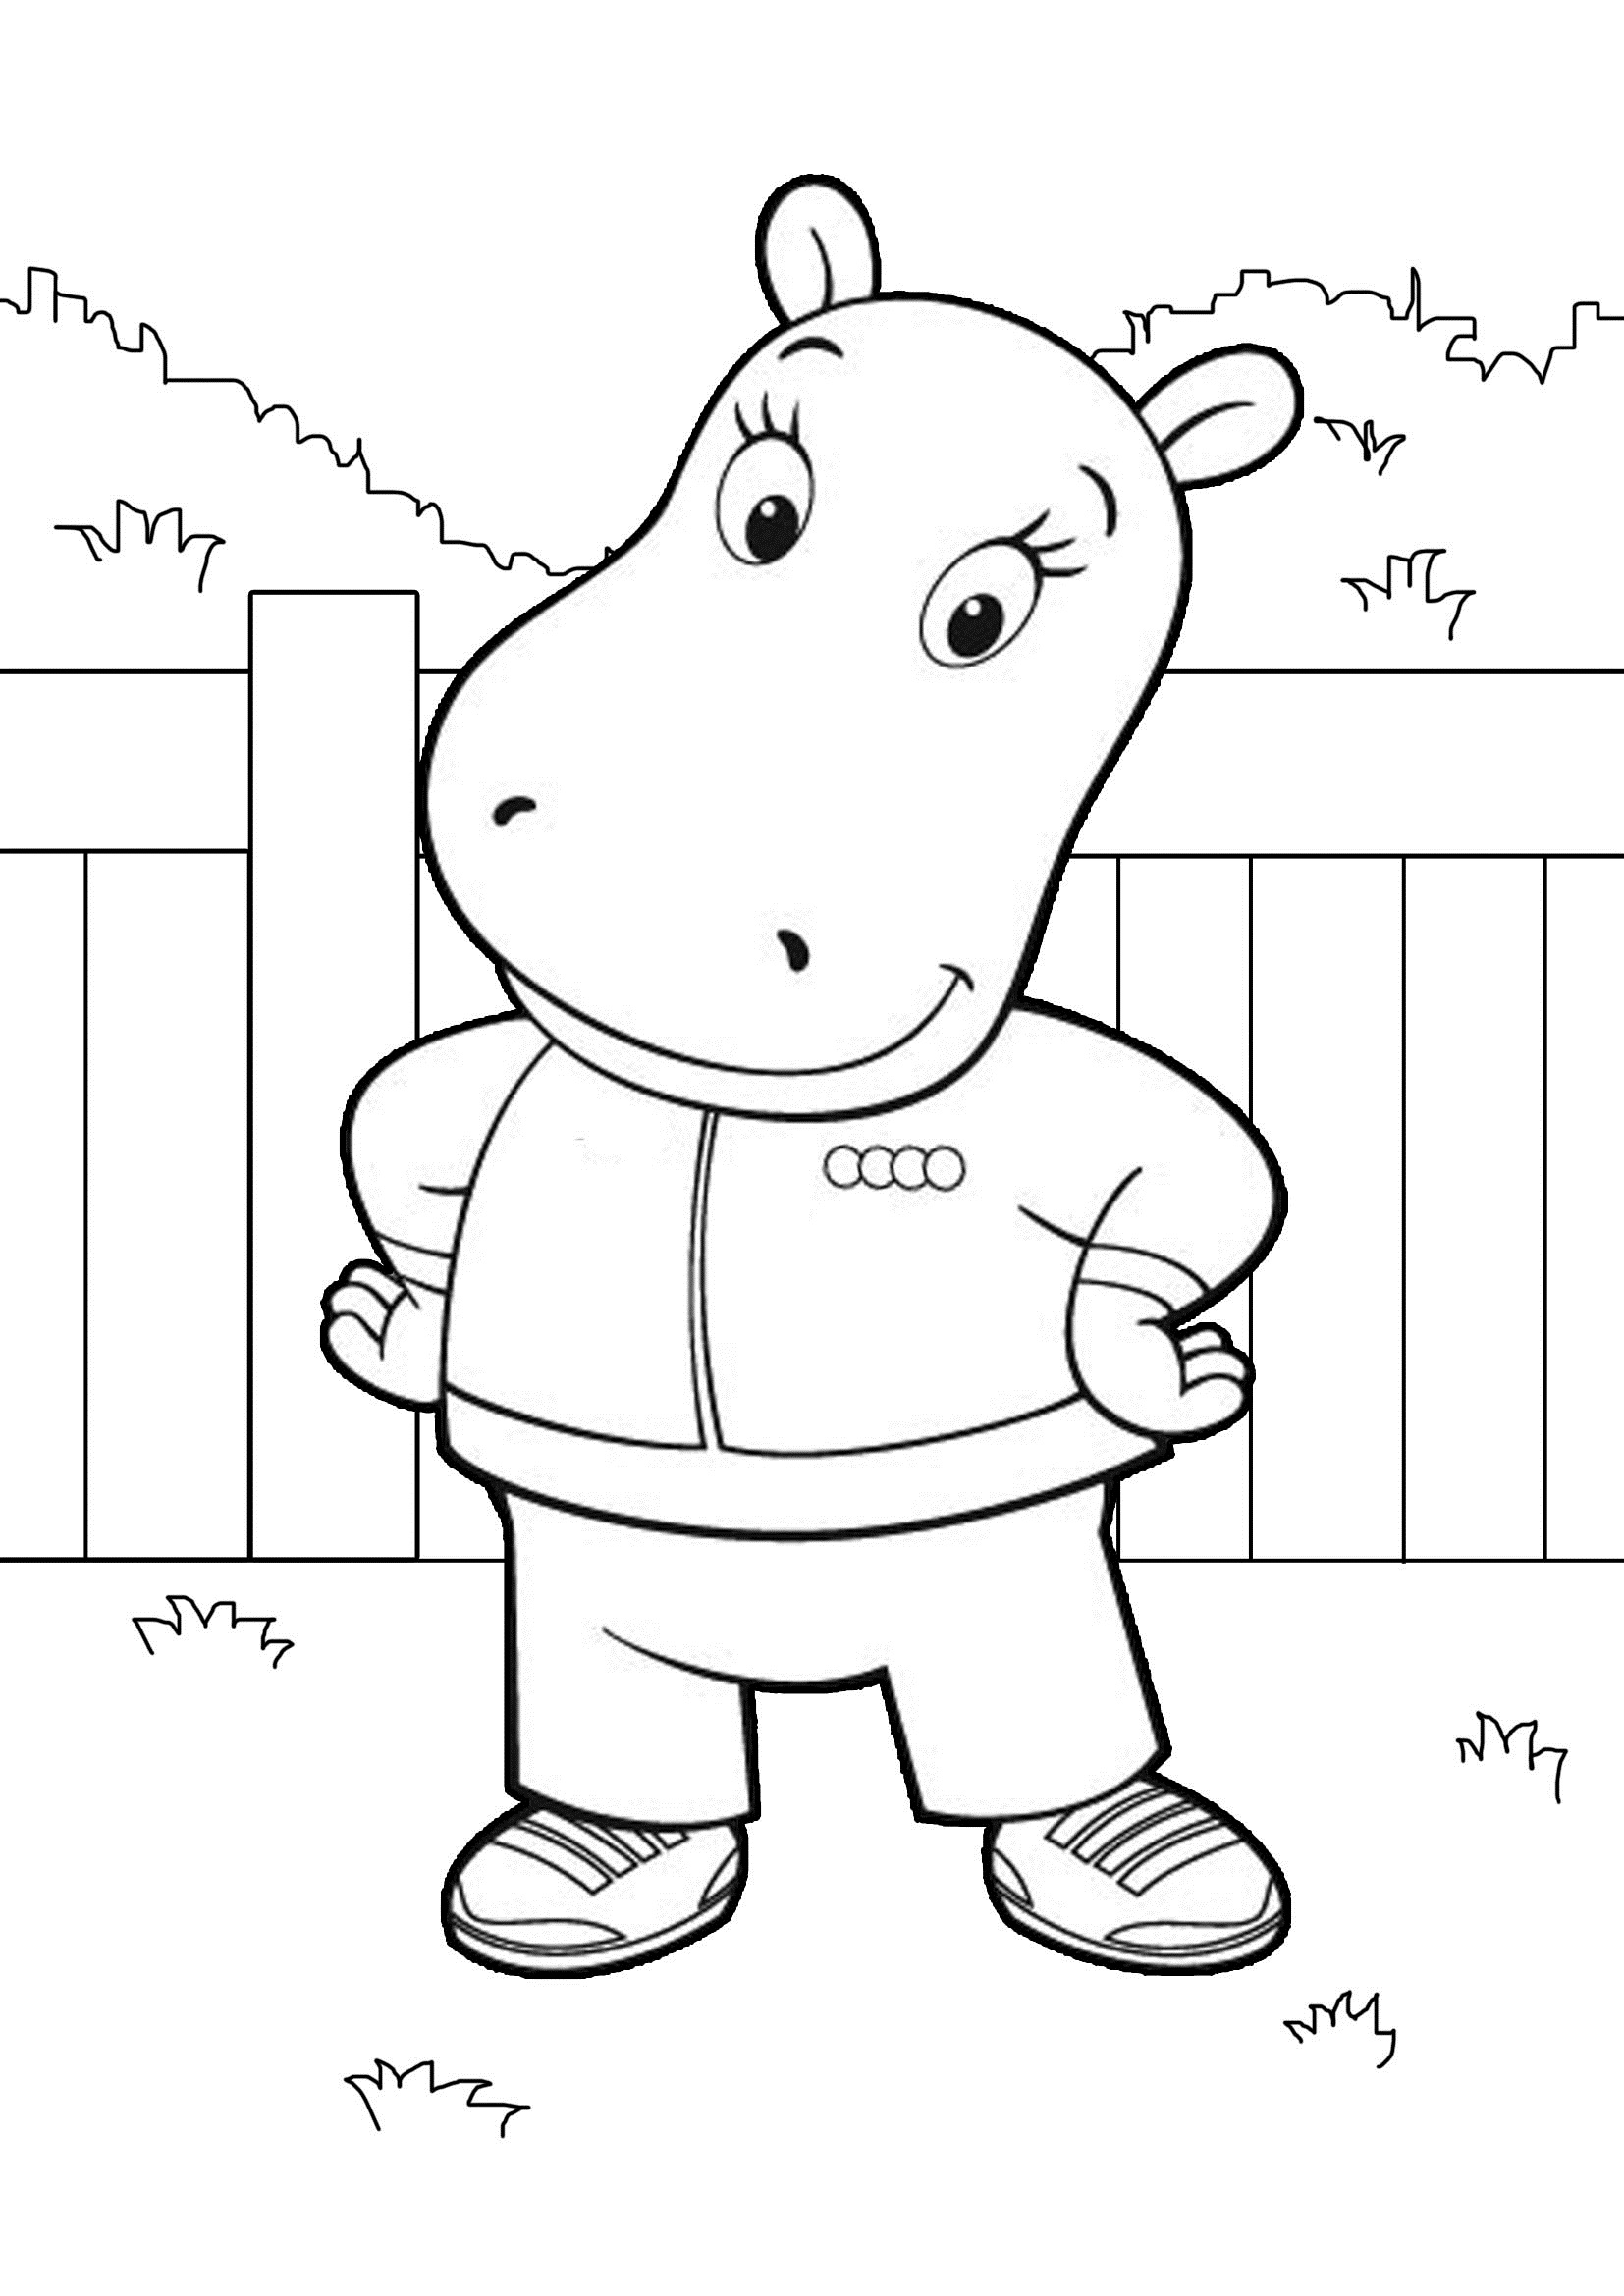 childrens colouring pictures free printable belle coloring pages for kids pictures childrens colouring